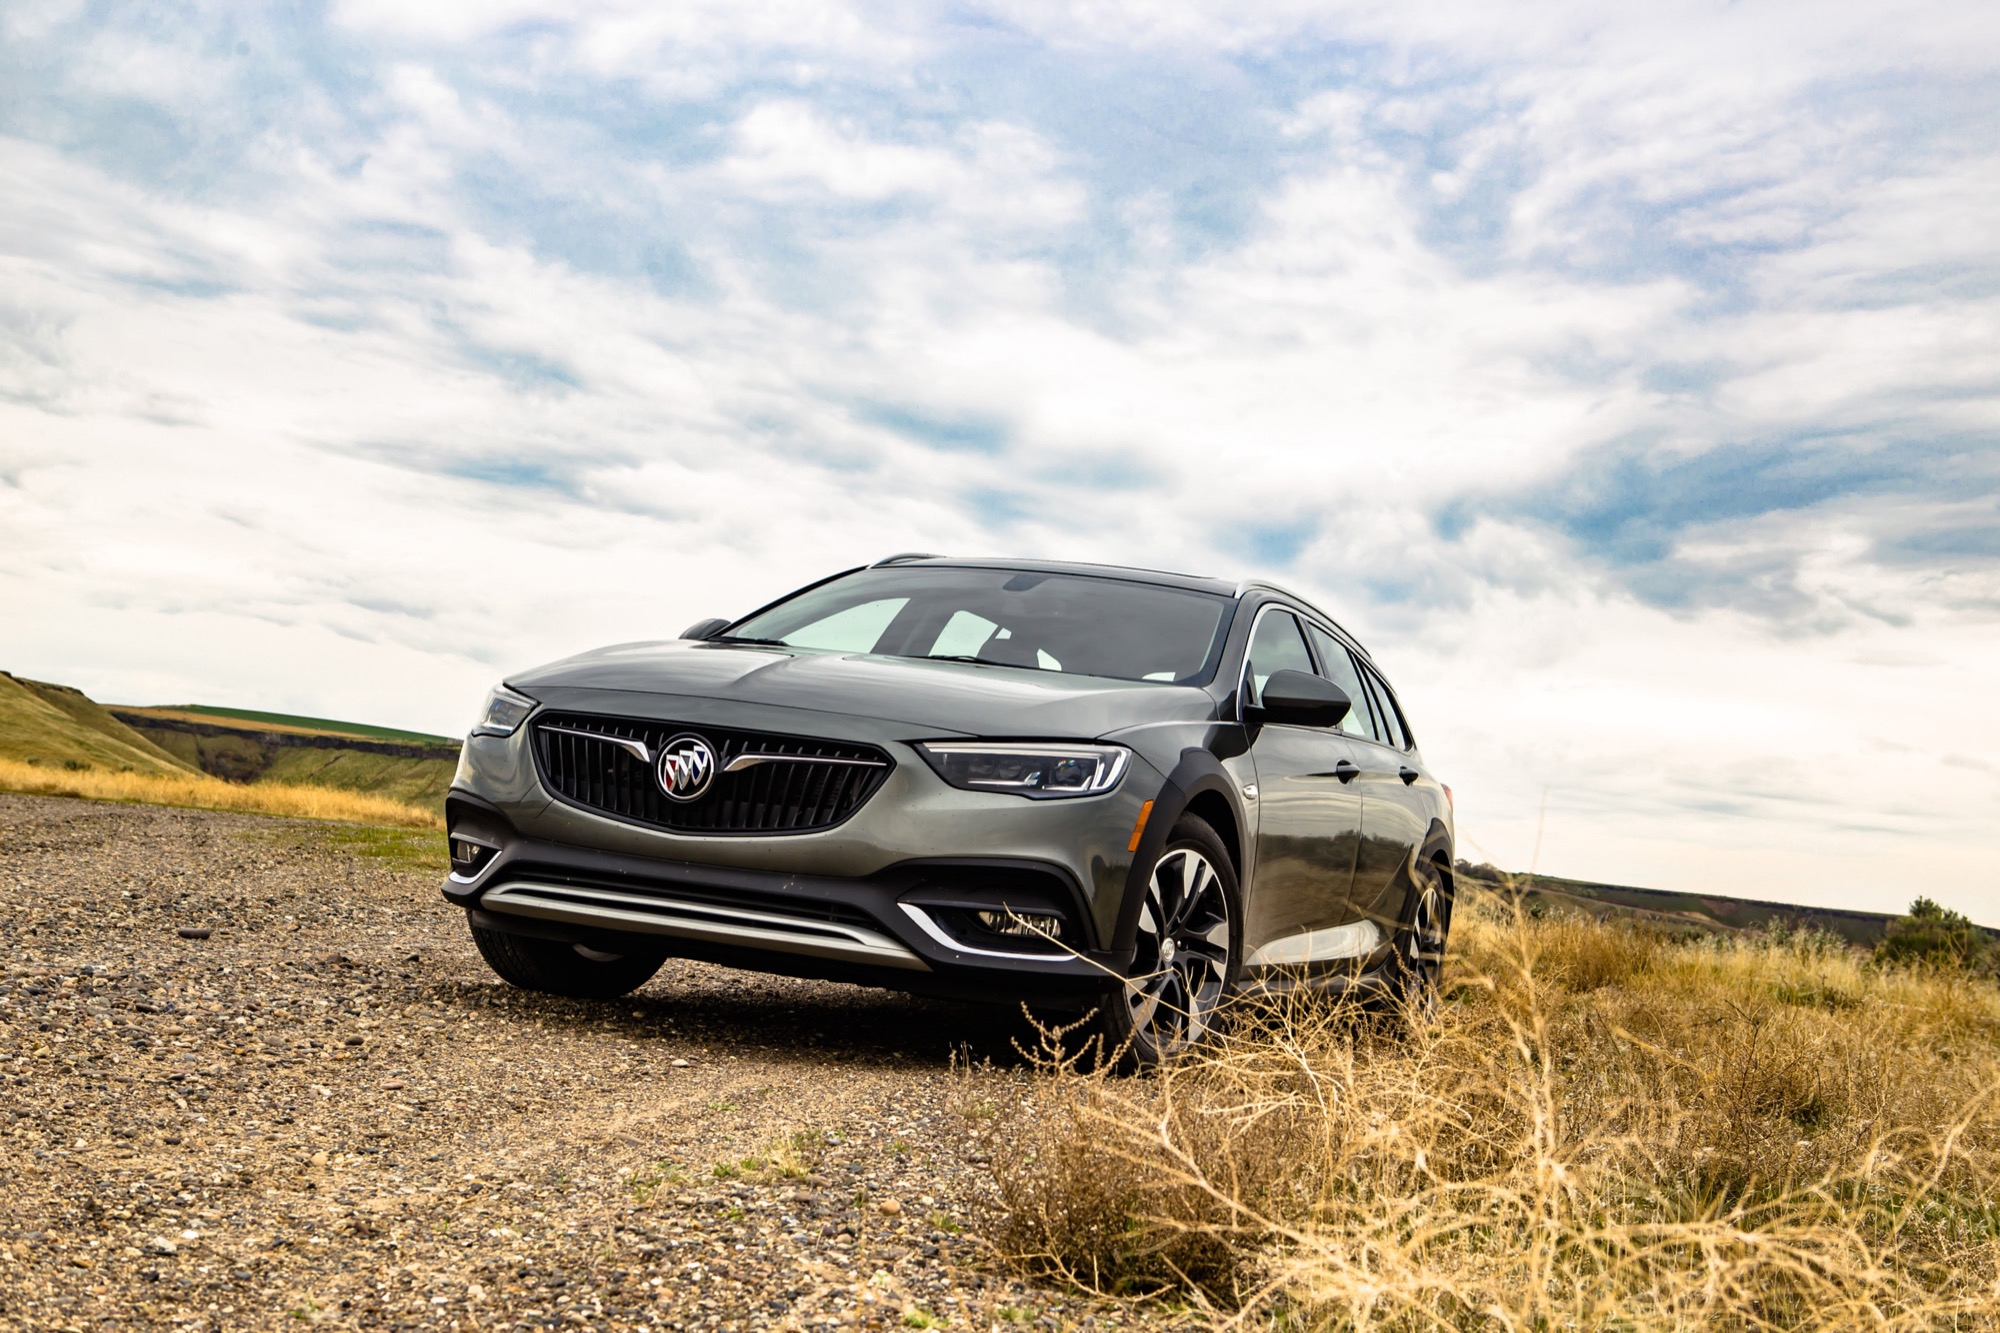 Does Buick Even Want To Sell The Regal Tourx? | Gm Authority New 2021 Buick Regal Tourx Discontinued, Mpg, Engine